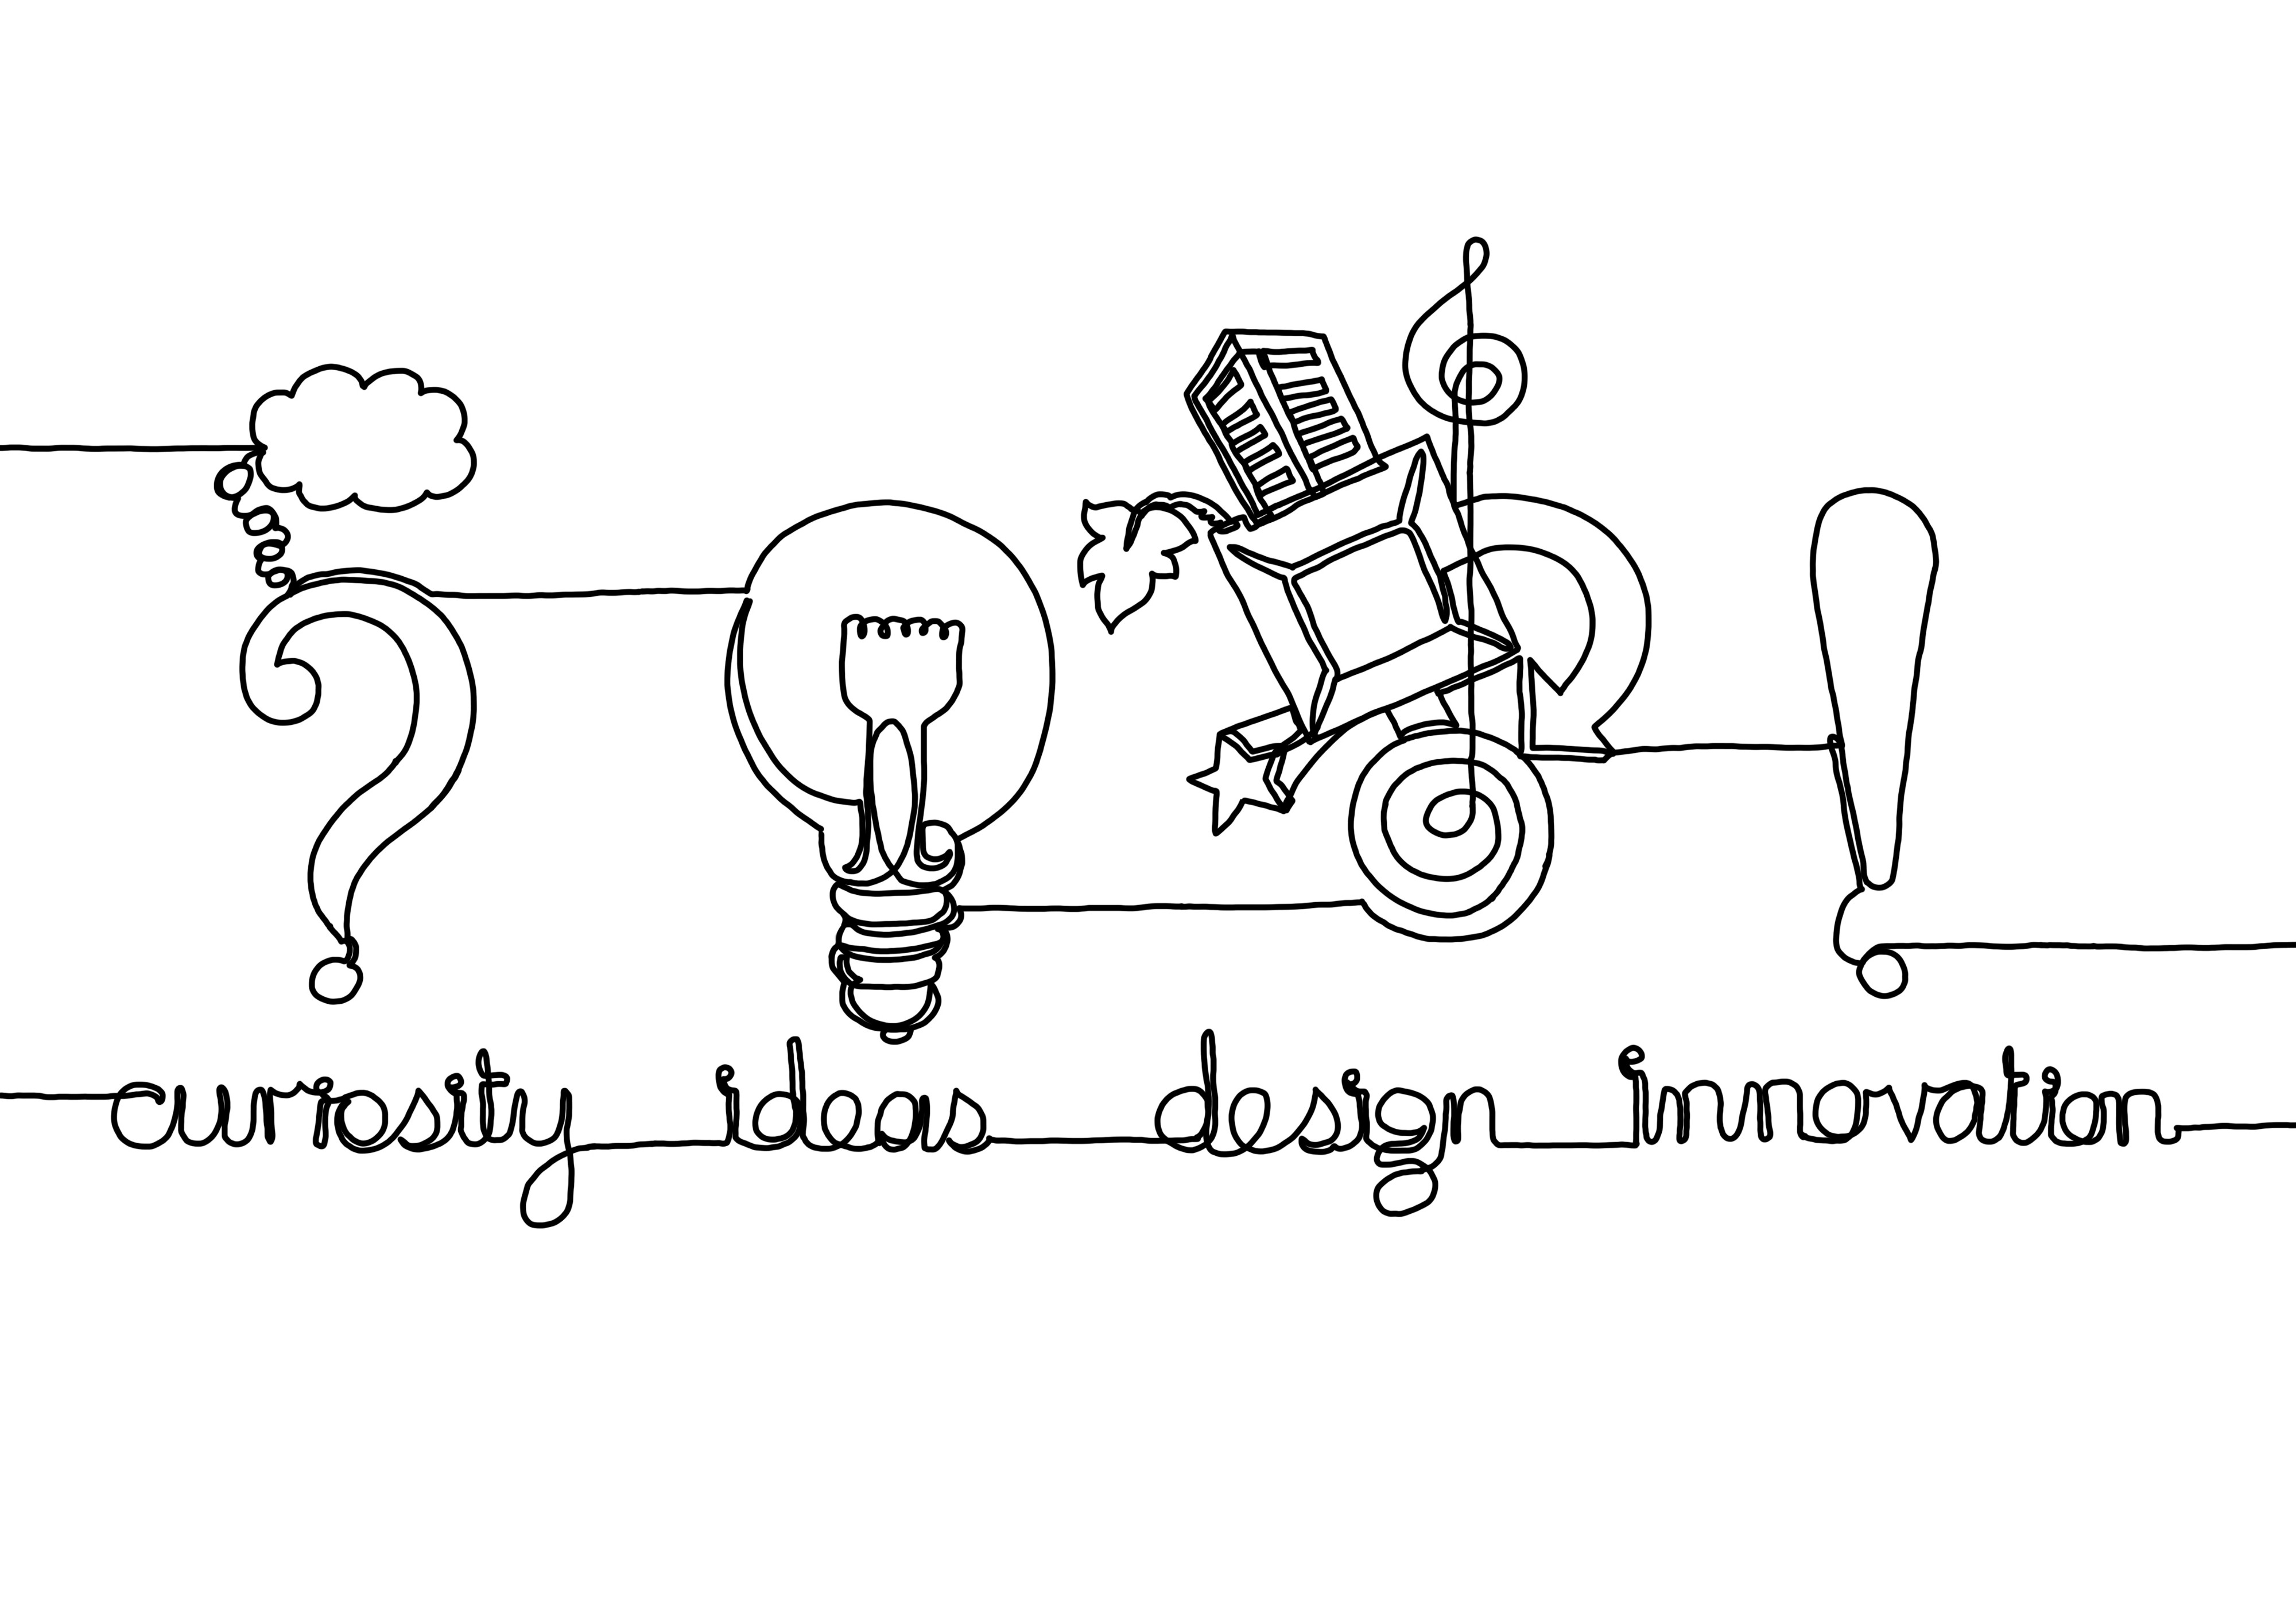 Curiosity, awe, wonder and imagination are essential for innovation and productivity.